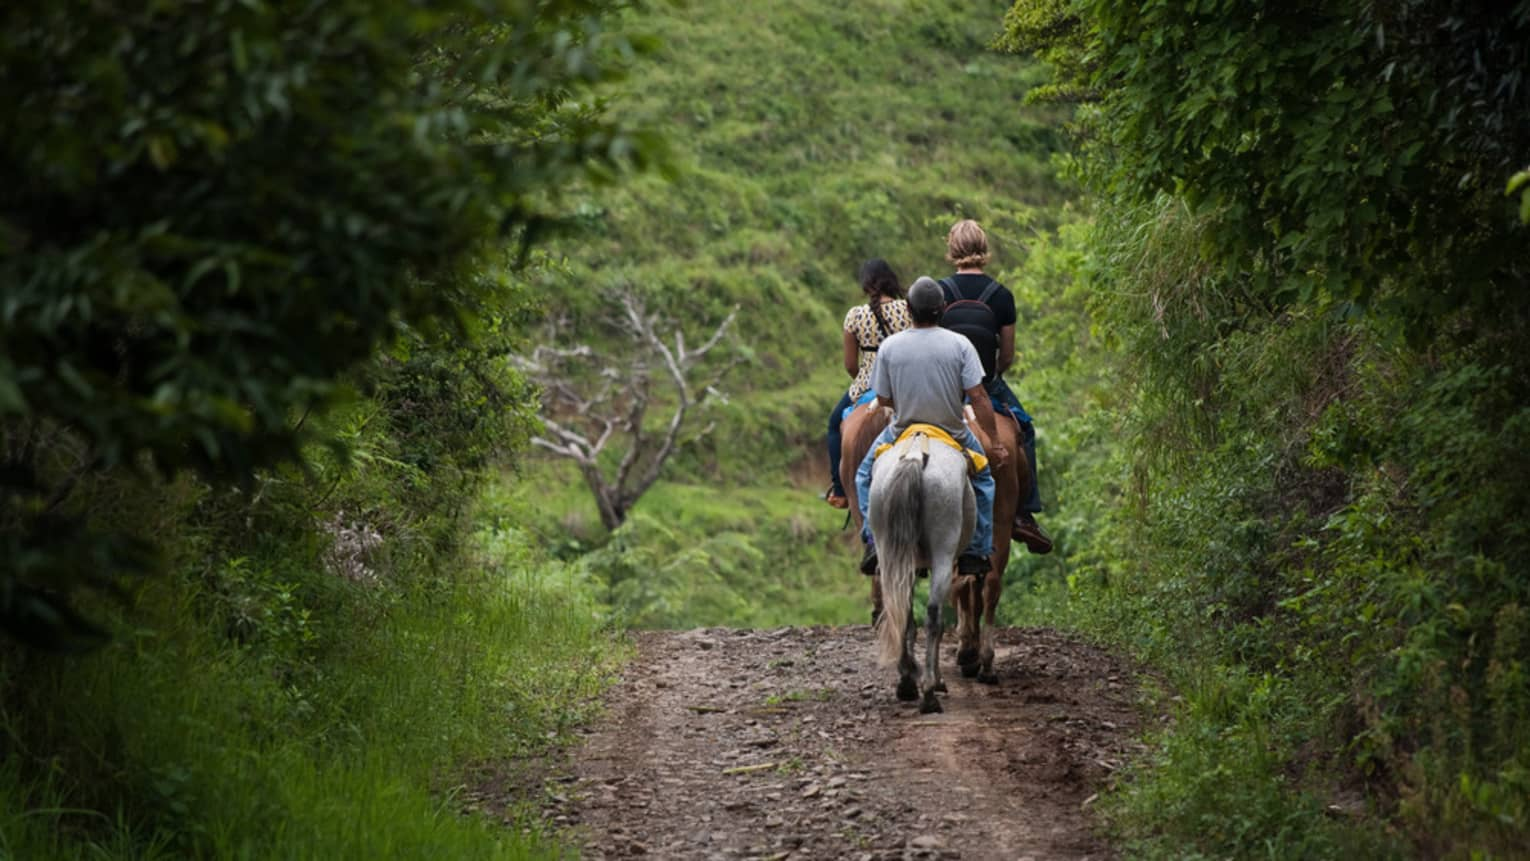 Back view of people riding horses down trail in tropical forest